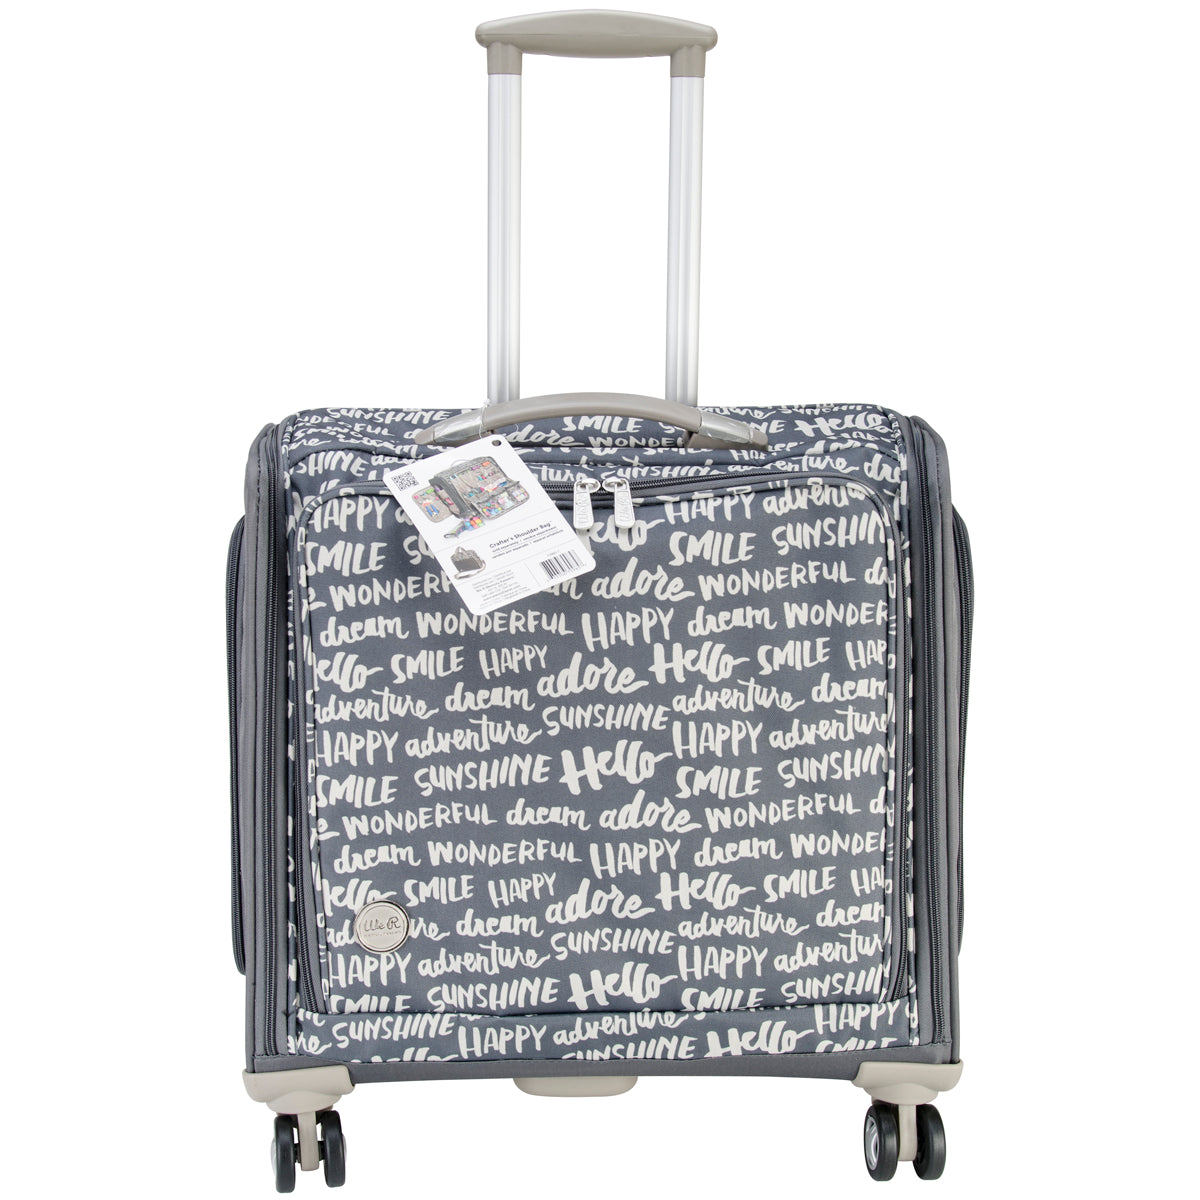 361862 We R 360 Crafter's Rolling Bag-Charcoal